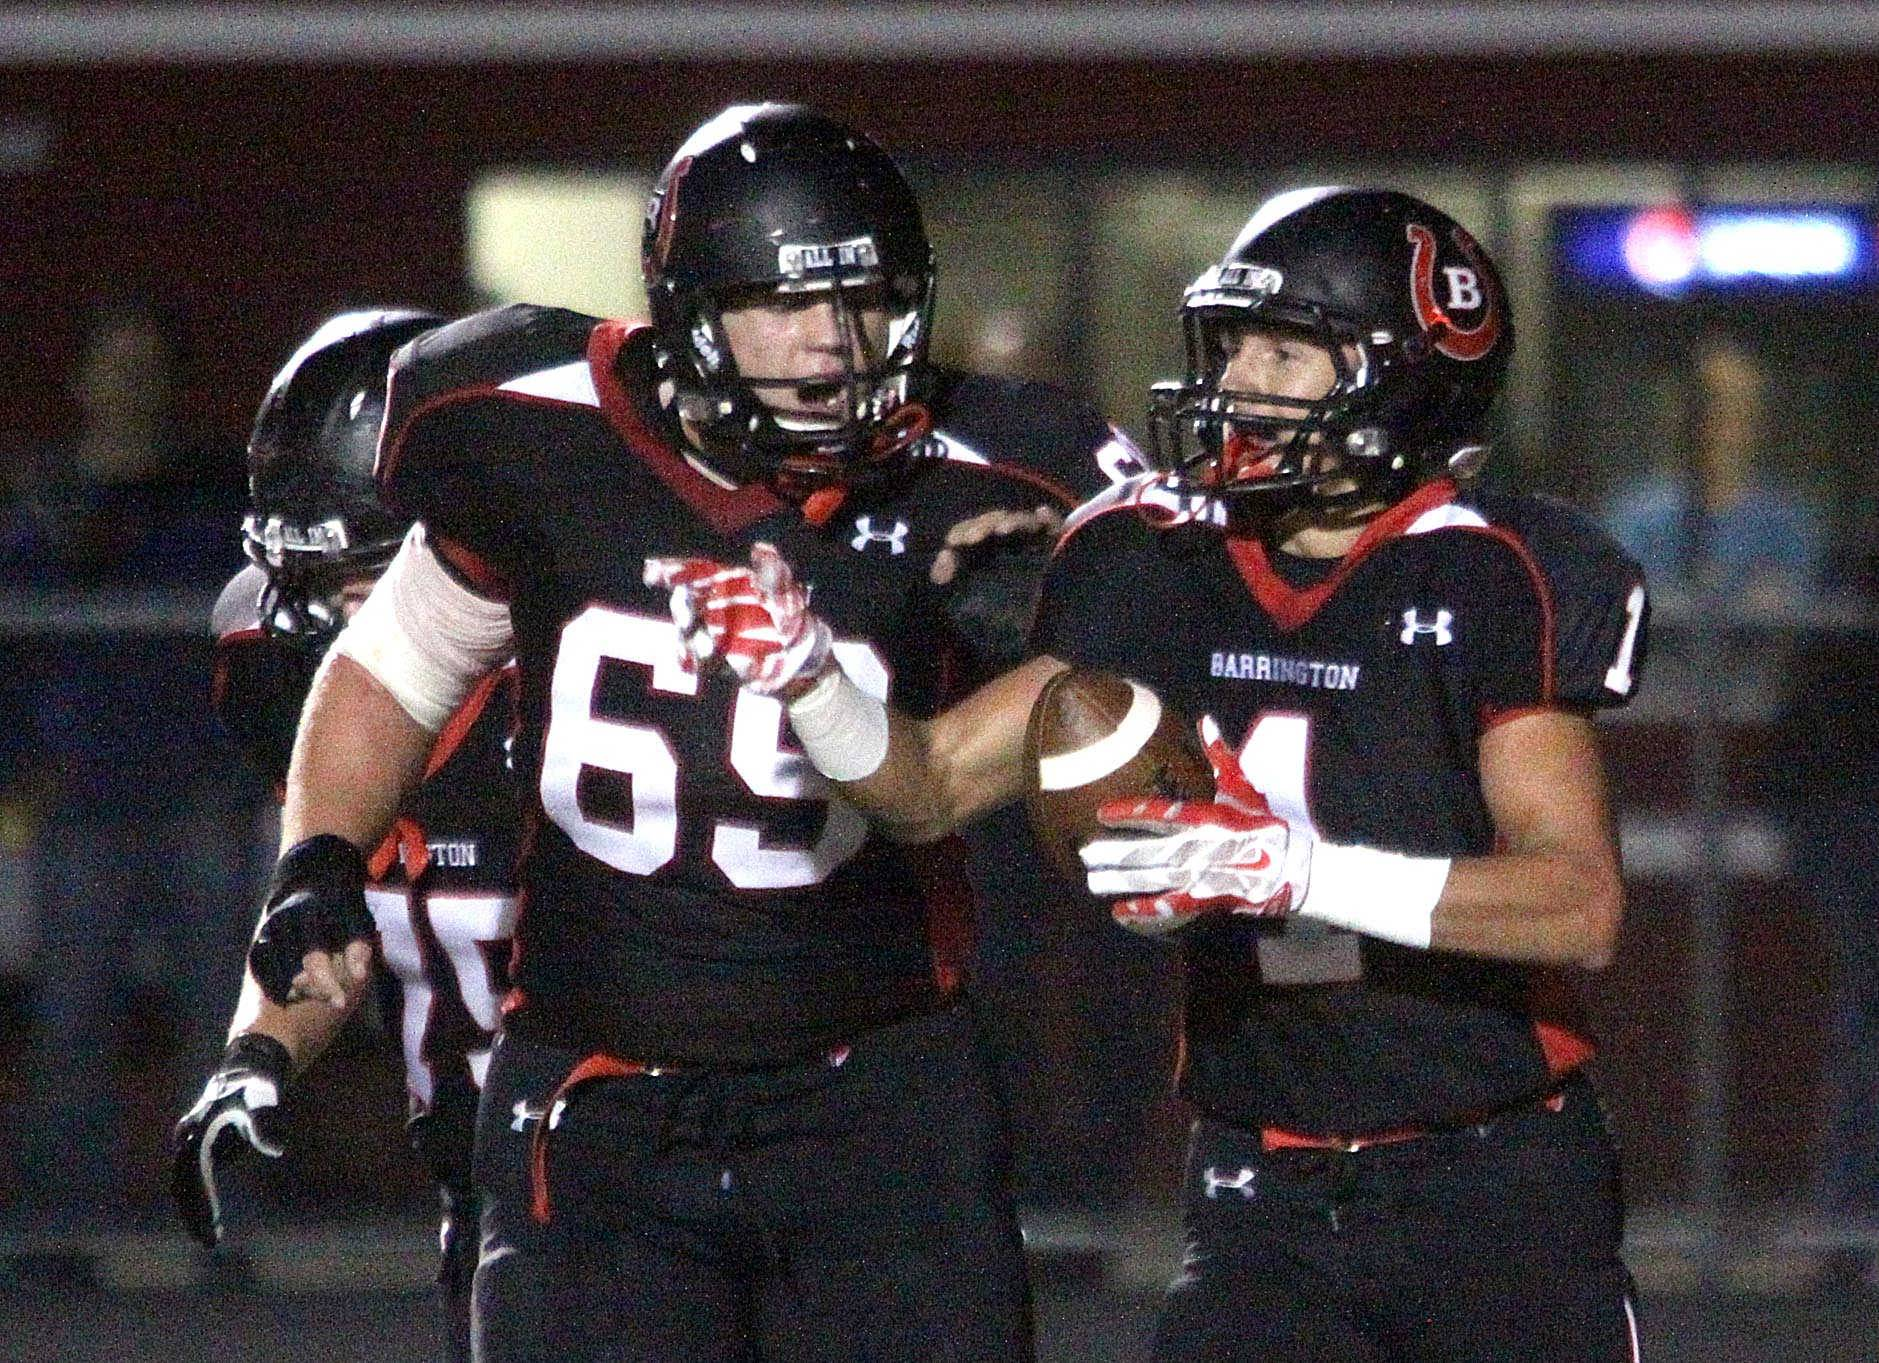 Barrington's Brett Morrison, left, congratulates Scotty Miller after a touchdown against Palatine at Coach Tom Frederick Field in Barrington.